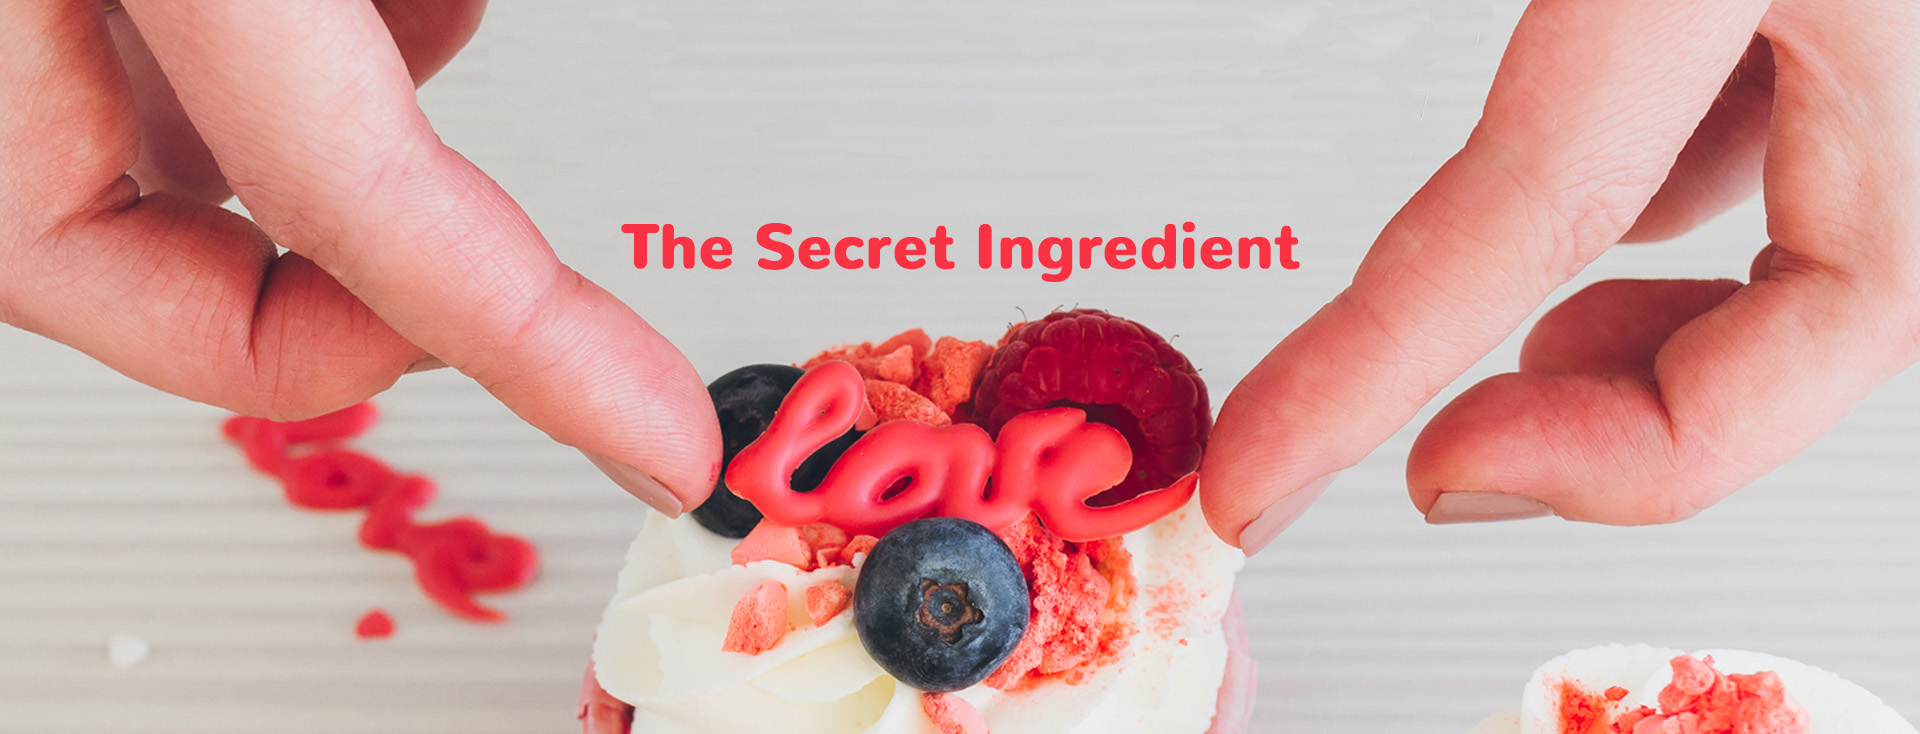 Food Made with Love the Secret Ingredient